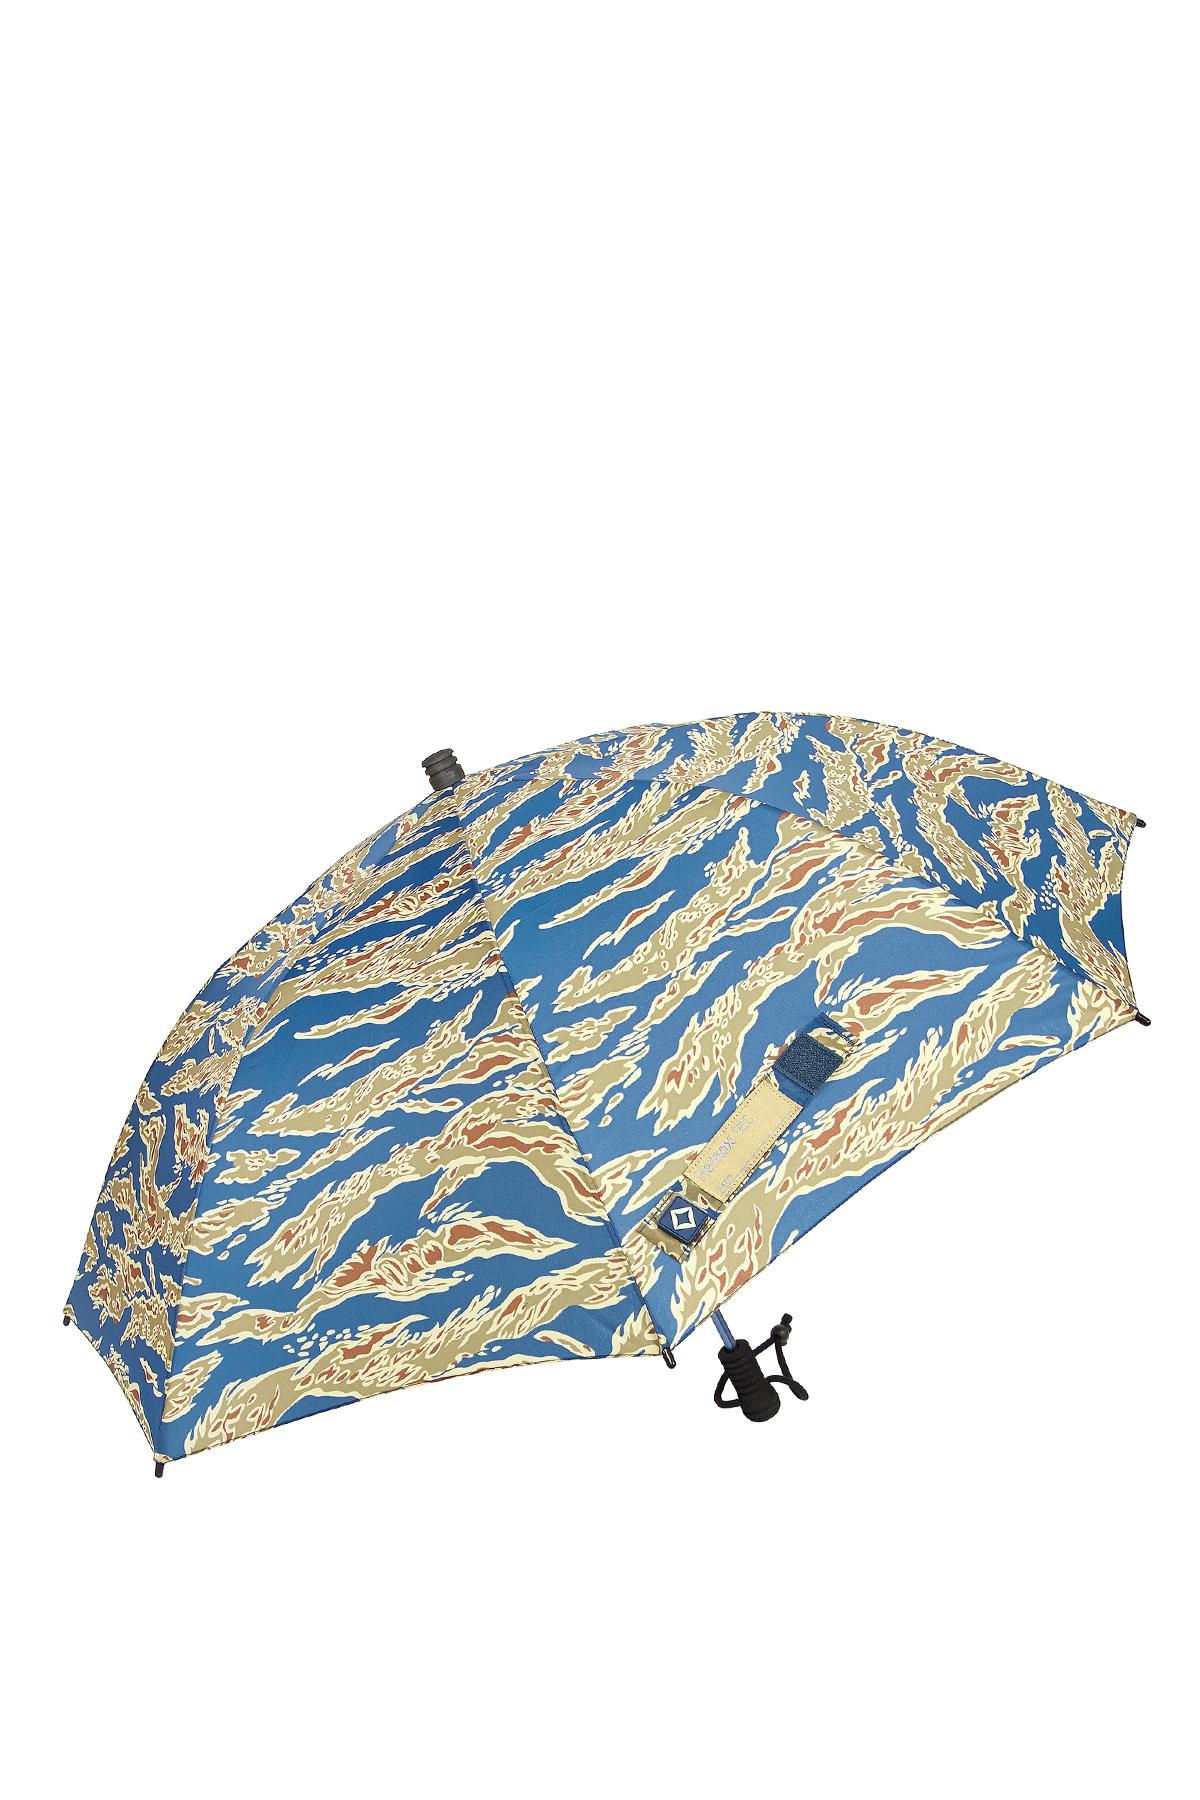 Helinox : Tactical Umbrella (Tiger Stripe Camo)